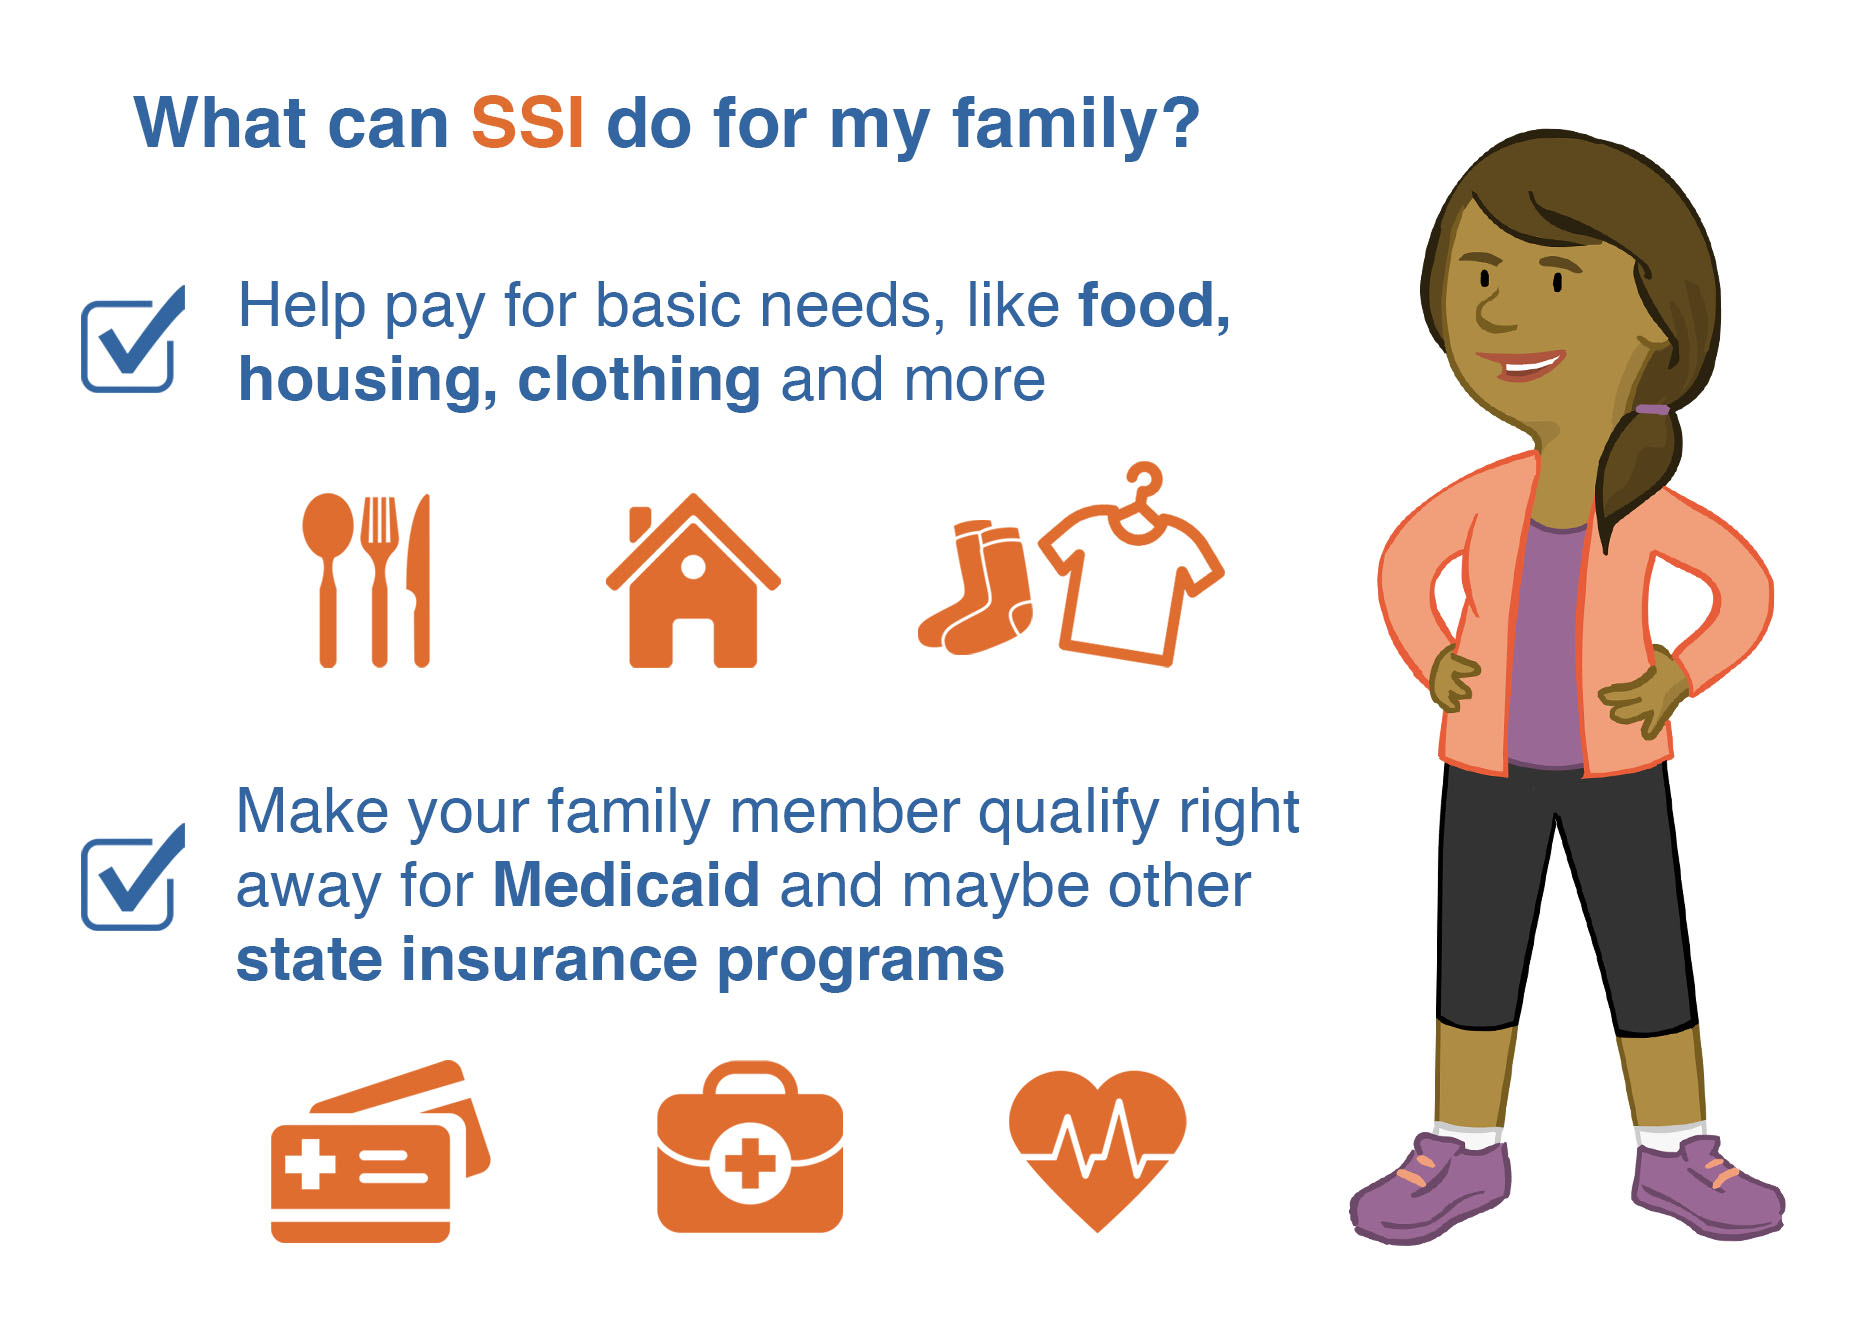 Image with the caption 'What can SSI do for my family?' above the text 'Help pay for basic needs, like food, housing, clothing and more. Make your family member qualify right away for Medicaid and maybe other state insurance programs'Icons for food, housing, clothing and healthcare are also in the image.